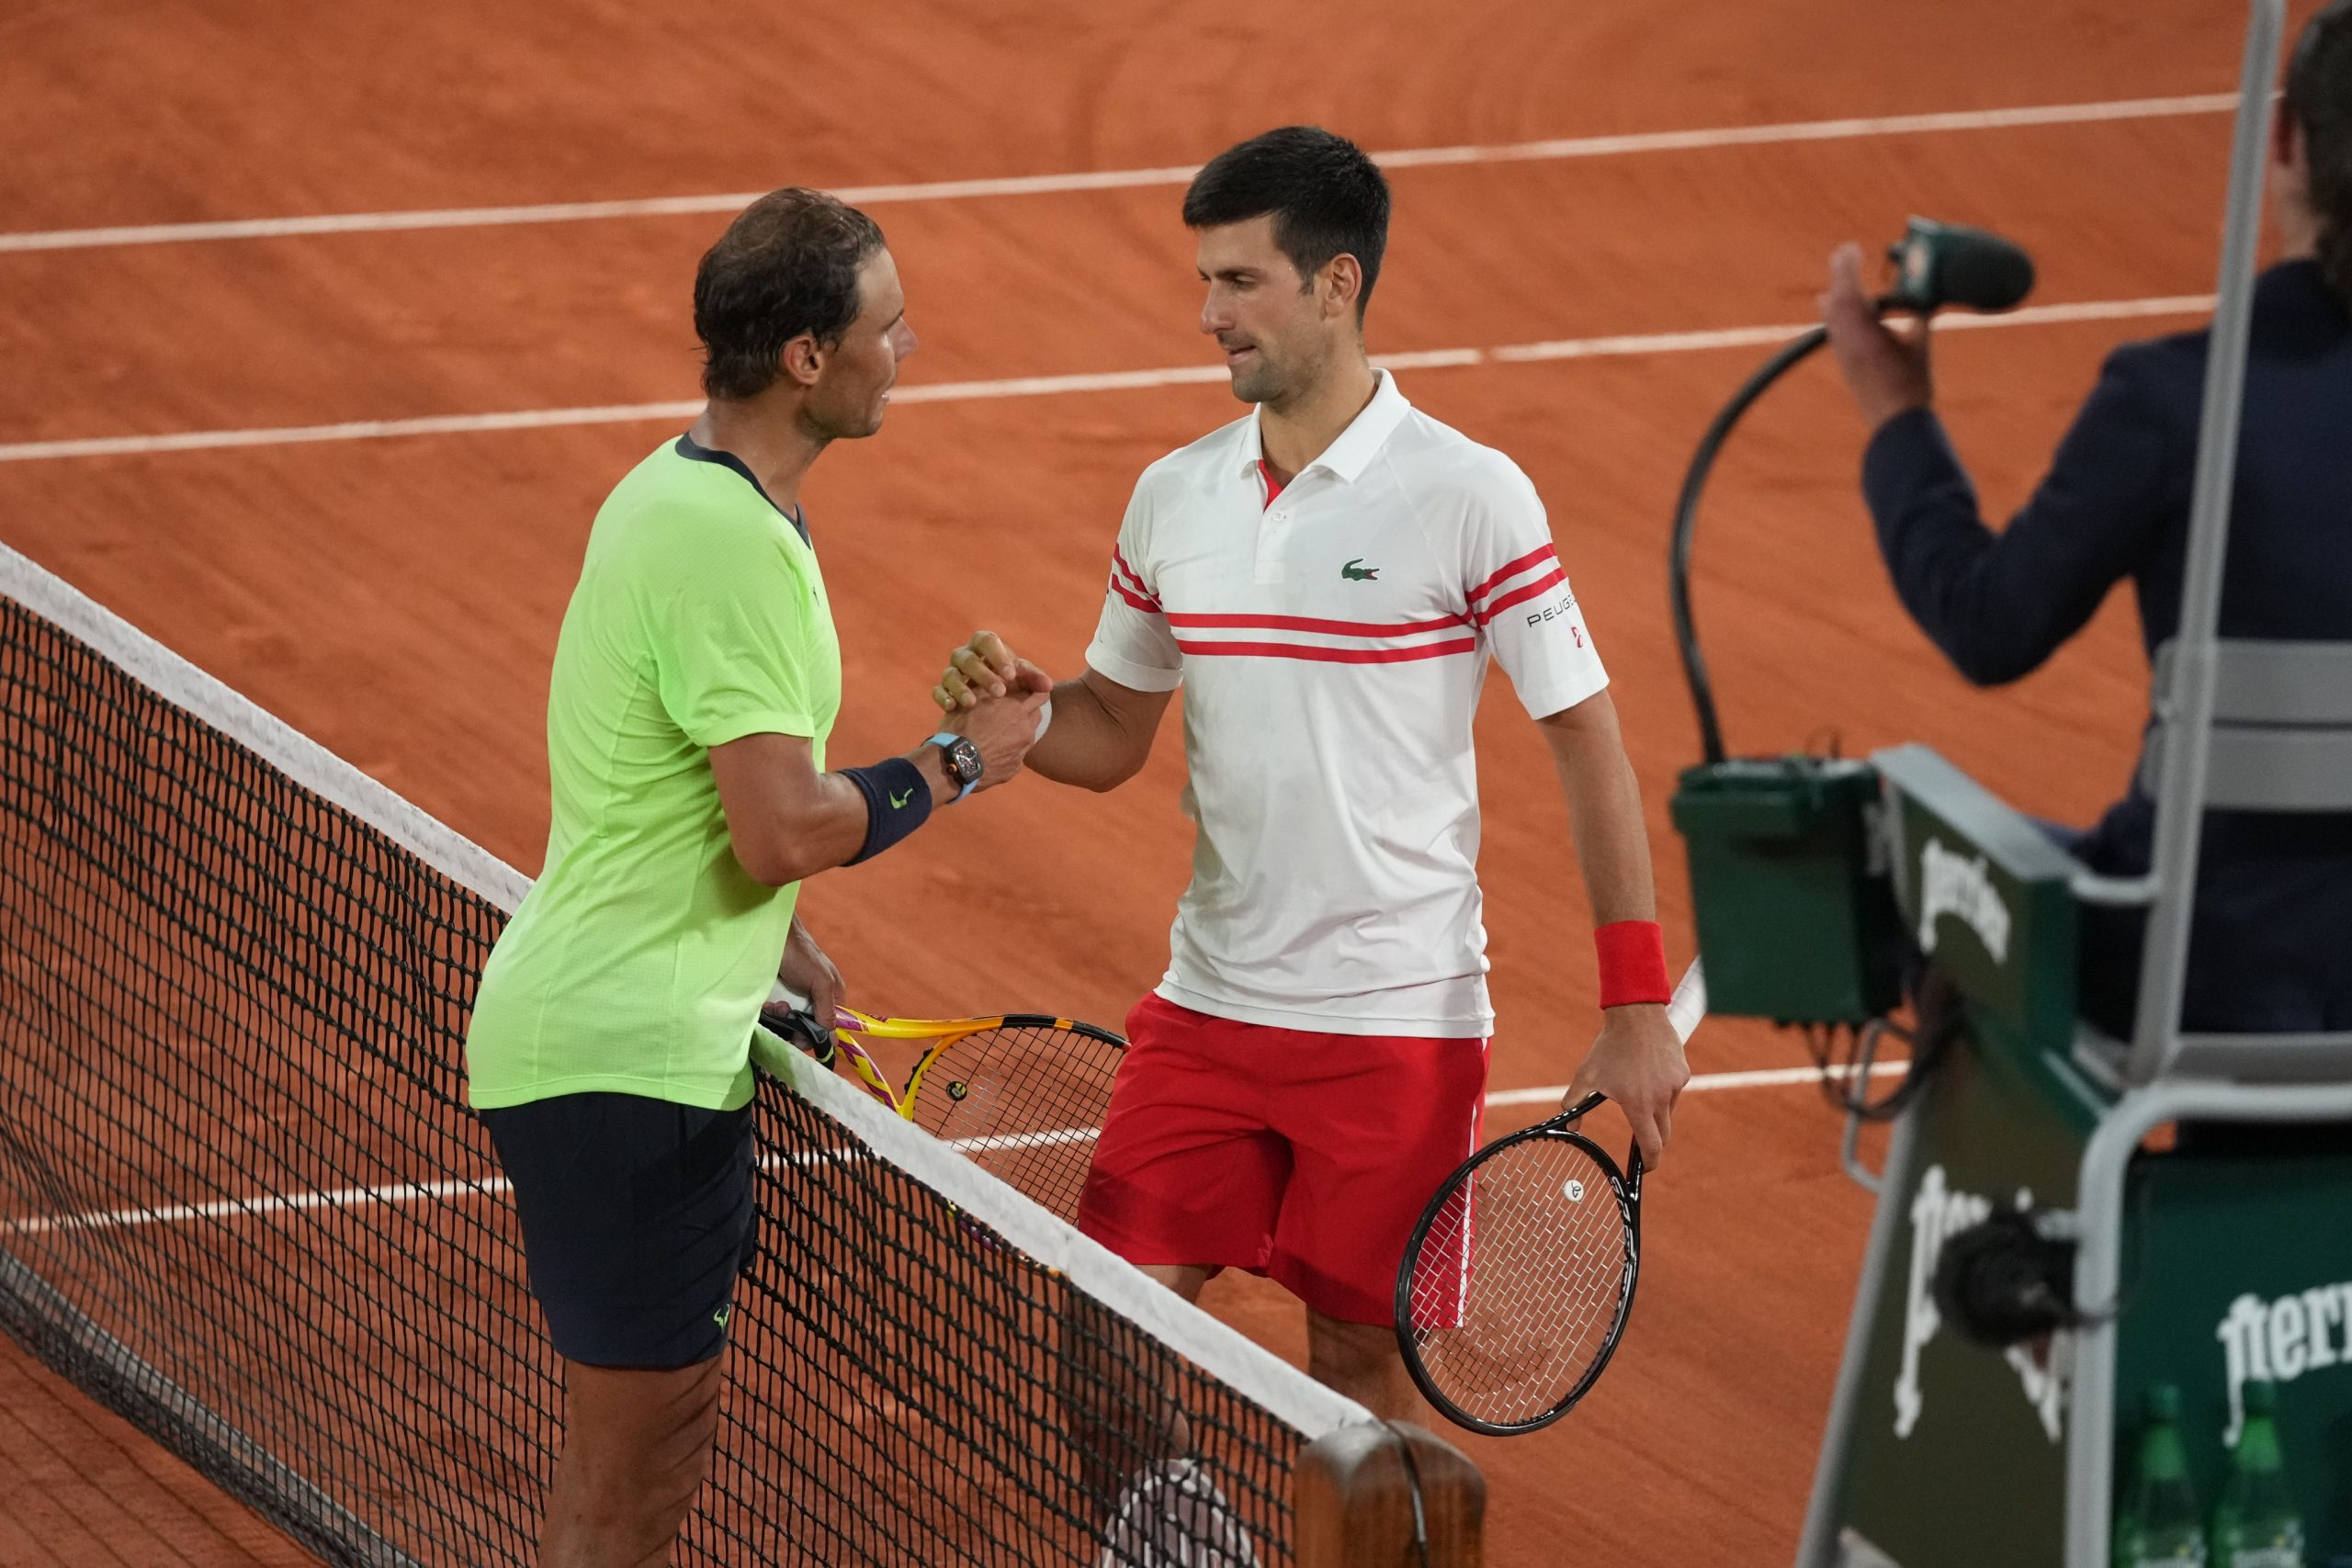 Djokovic defeats him and goes on to the final